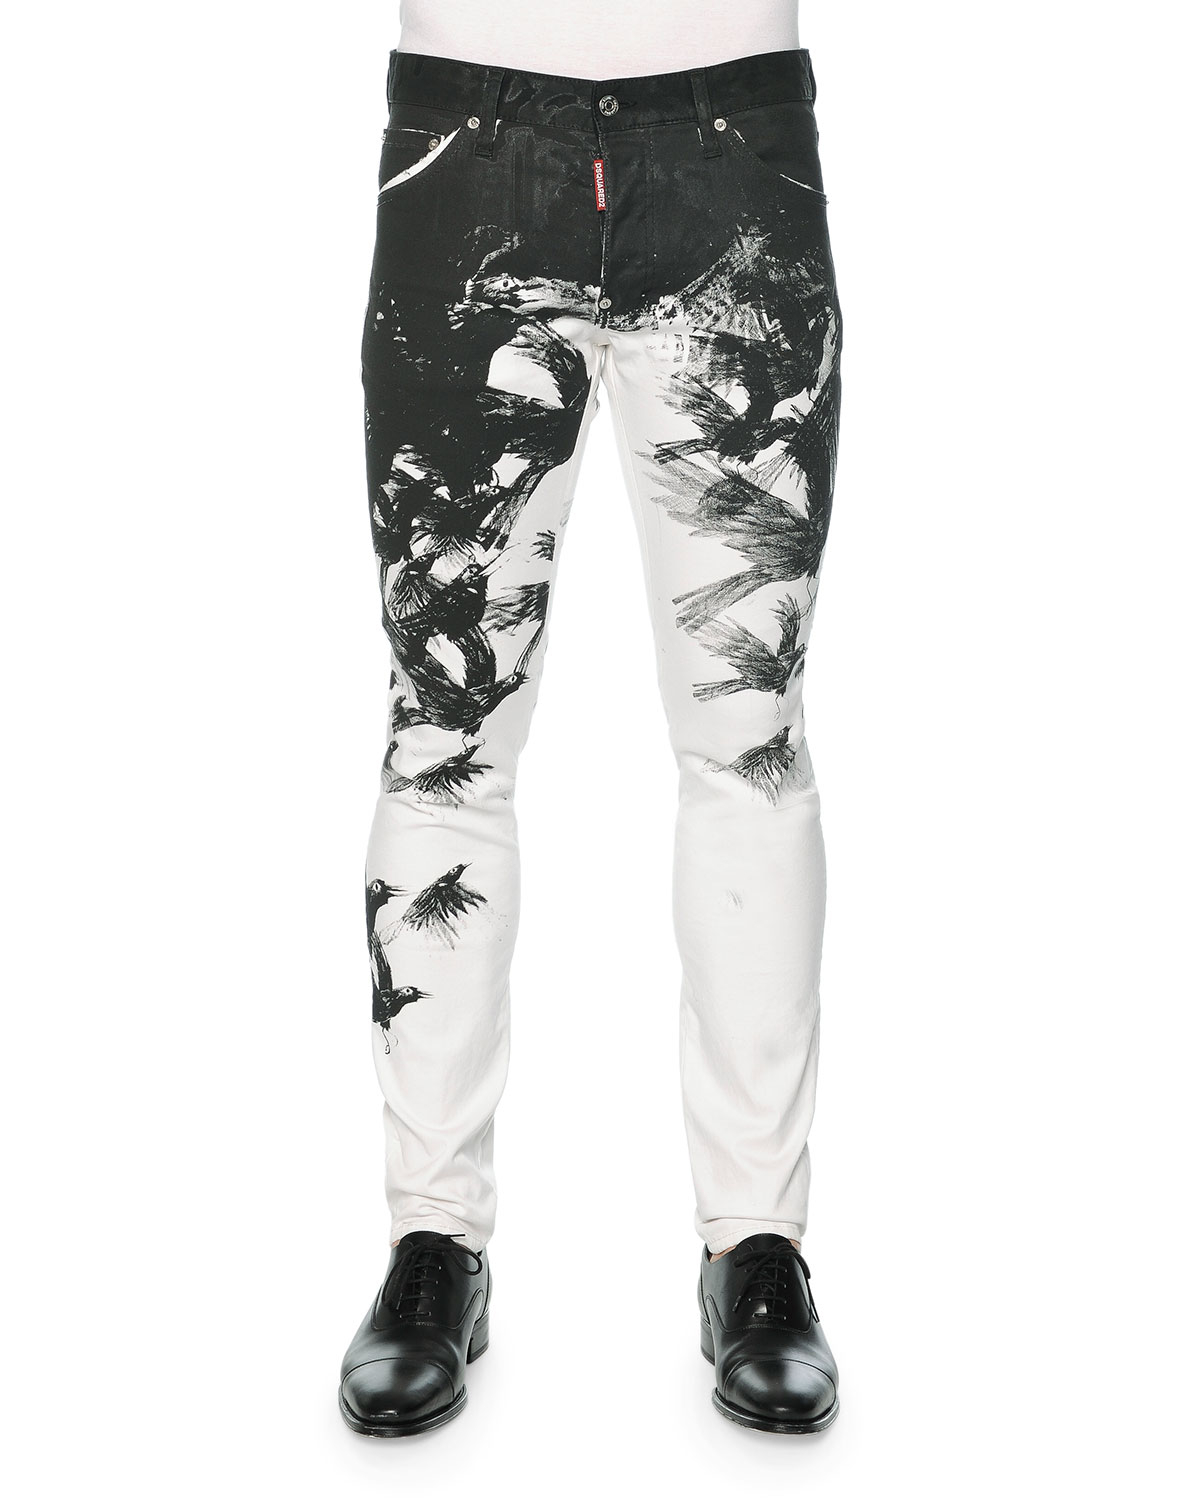 Lyst - DSquared² Cool Guy Crow-print Skinny Jeans in Gray for Men c47c92a4b